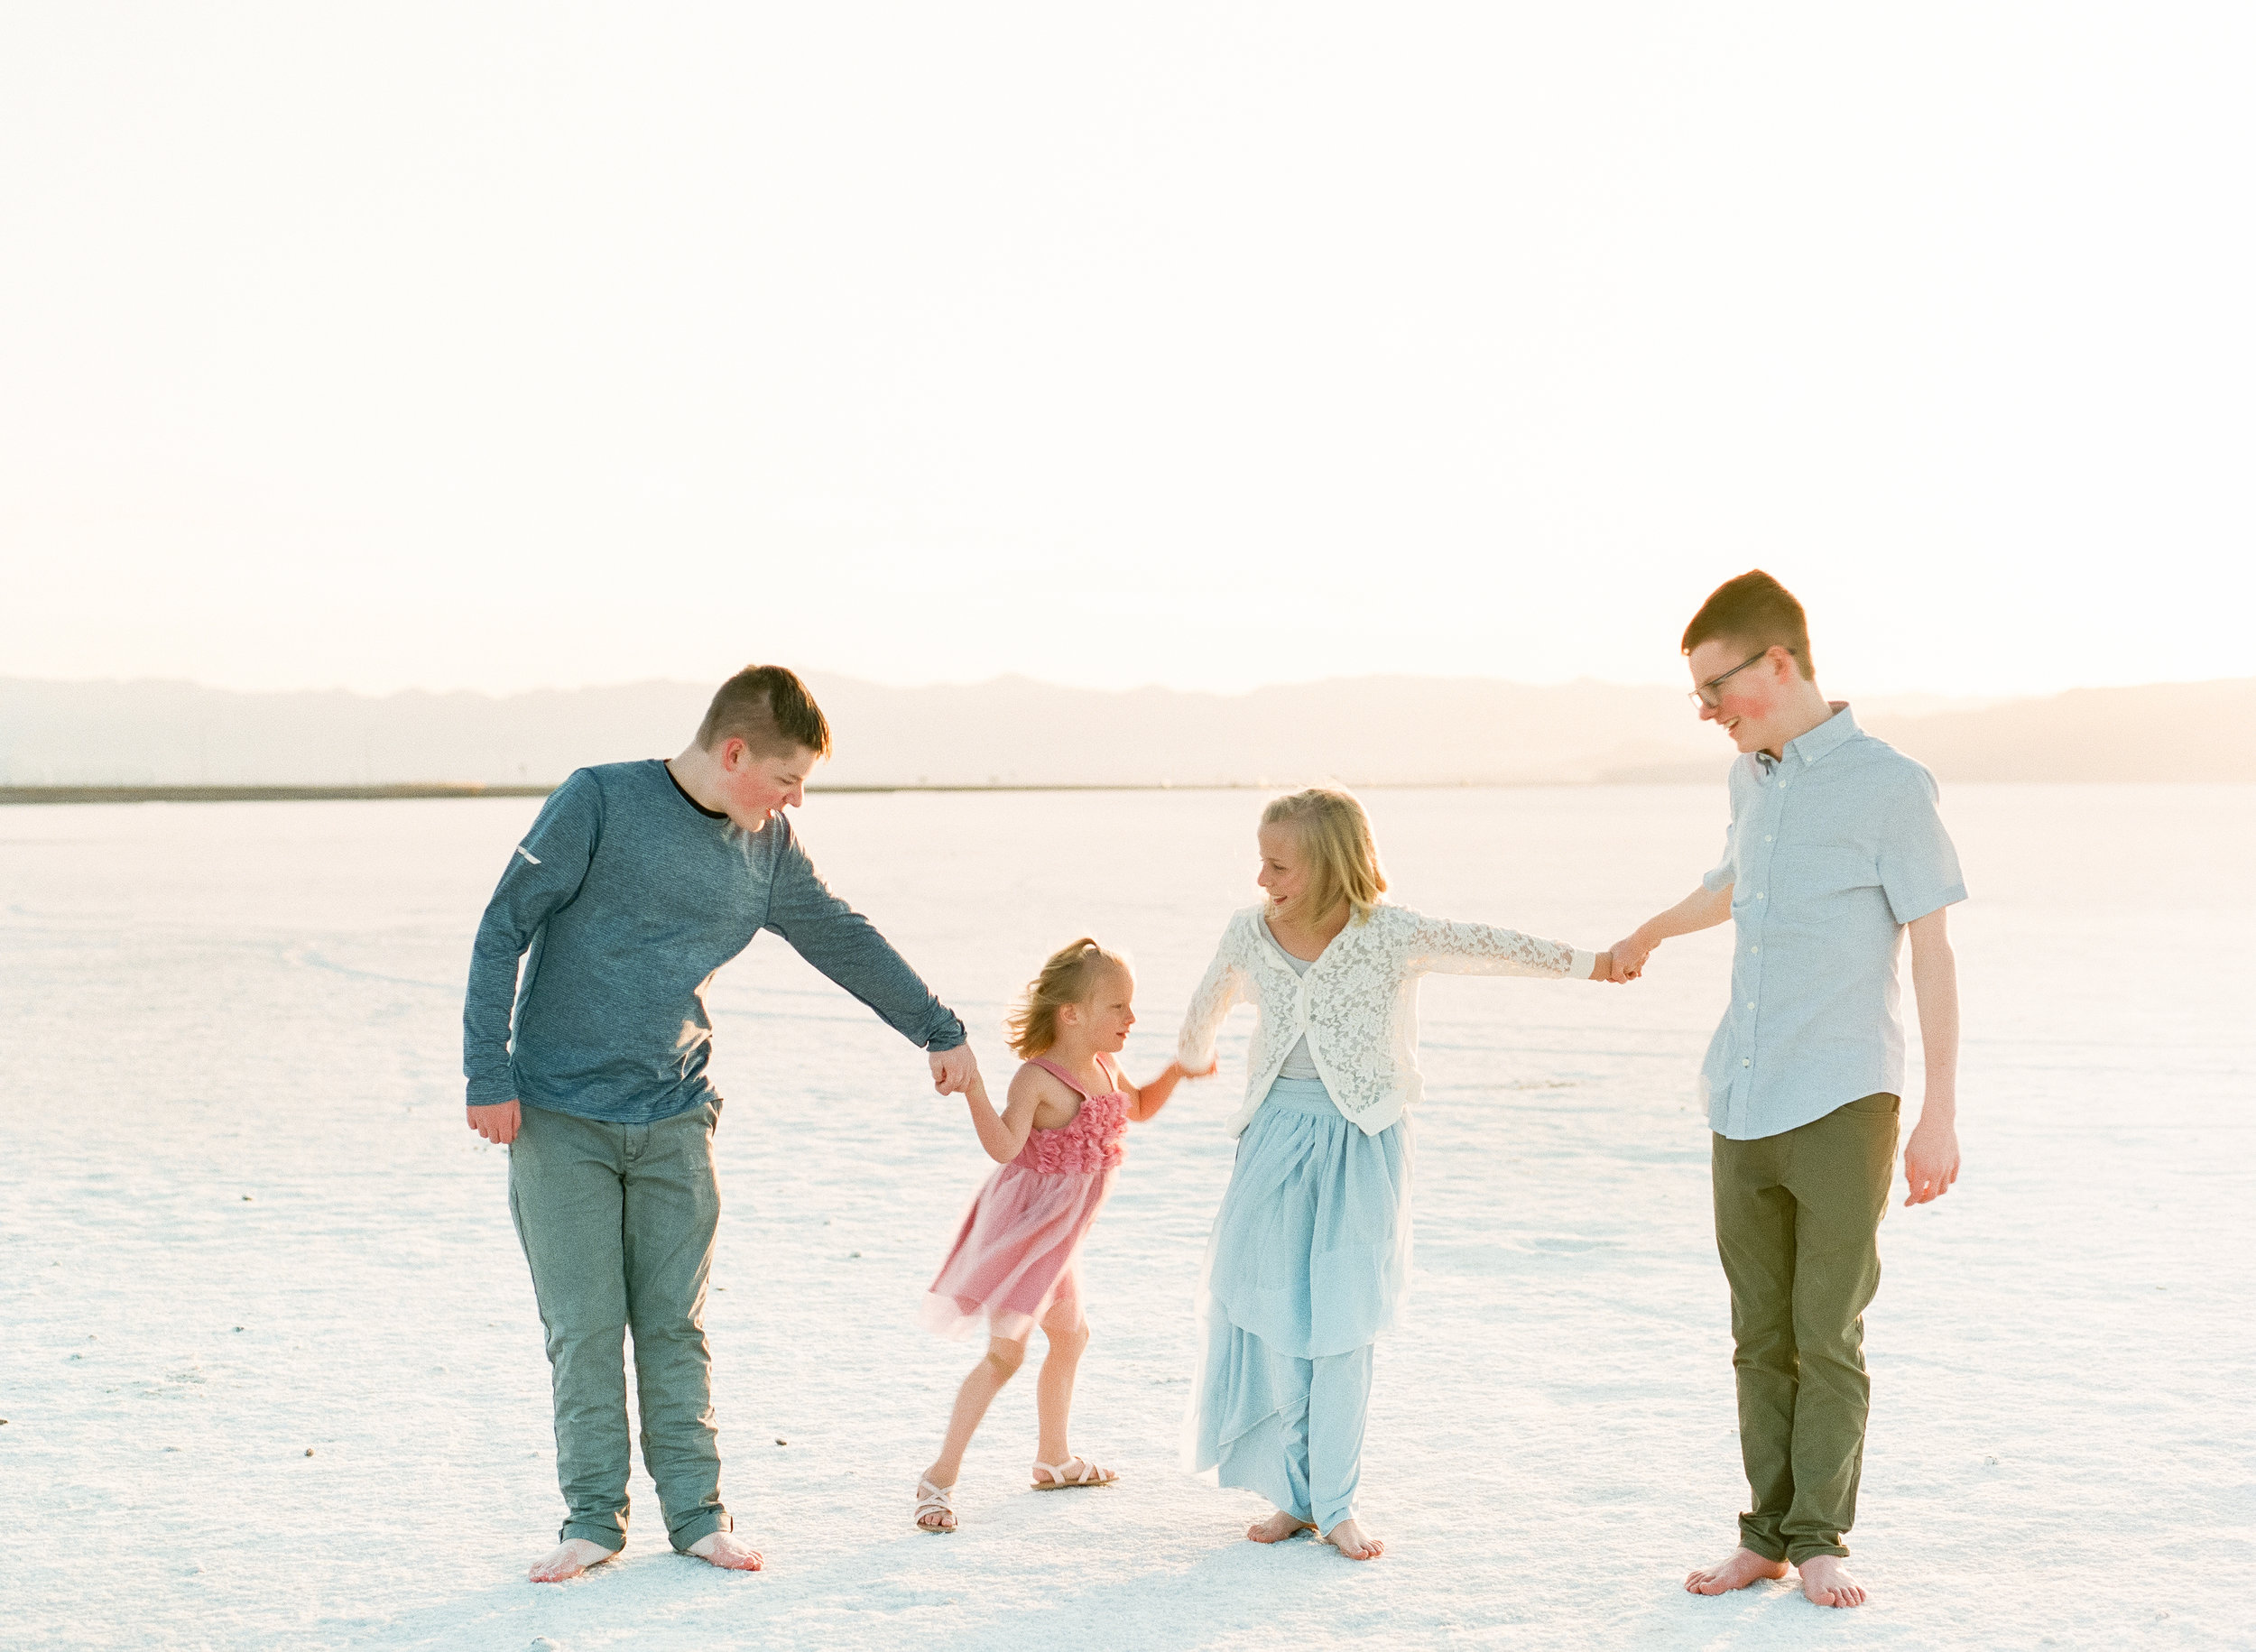 travel-family-film-photographer-salt-flats-utah-002